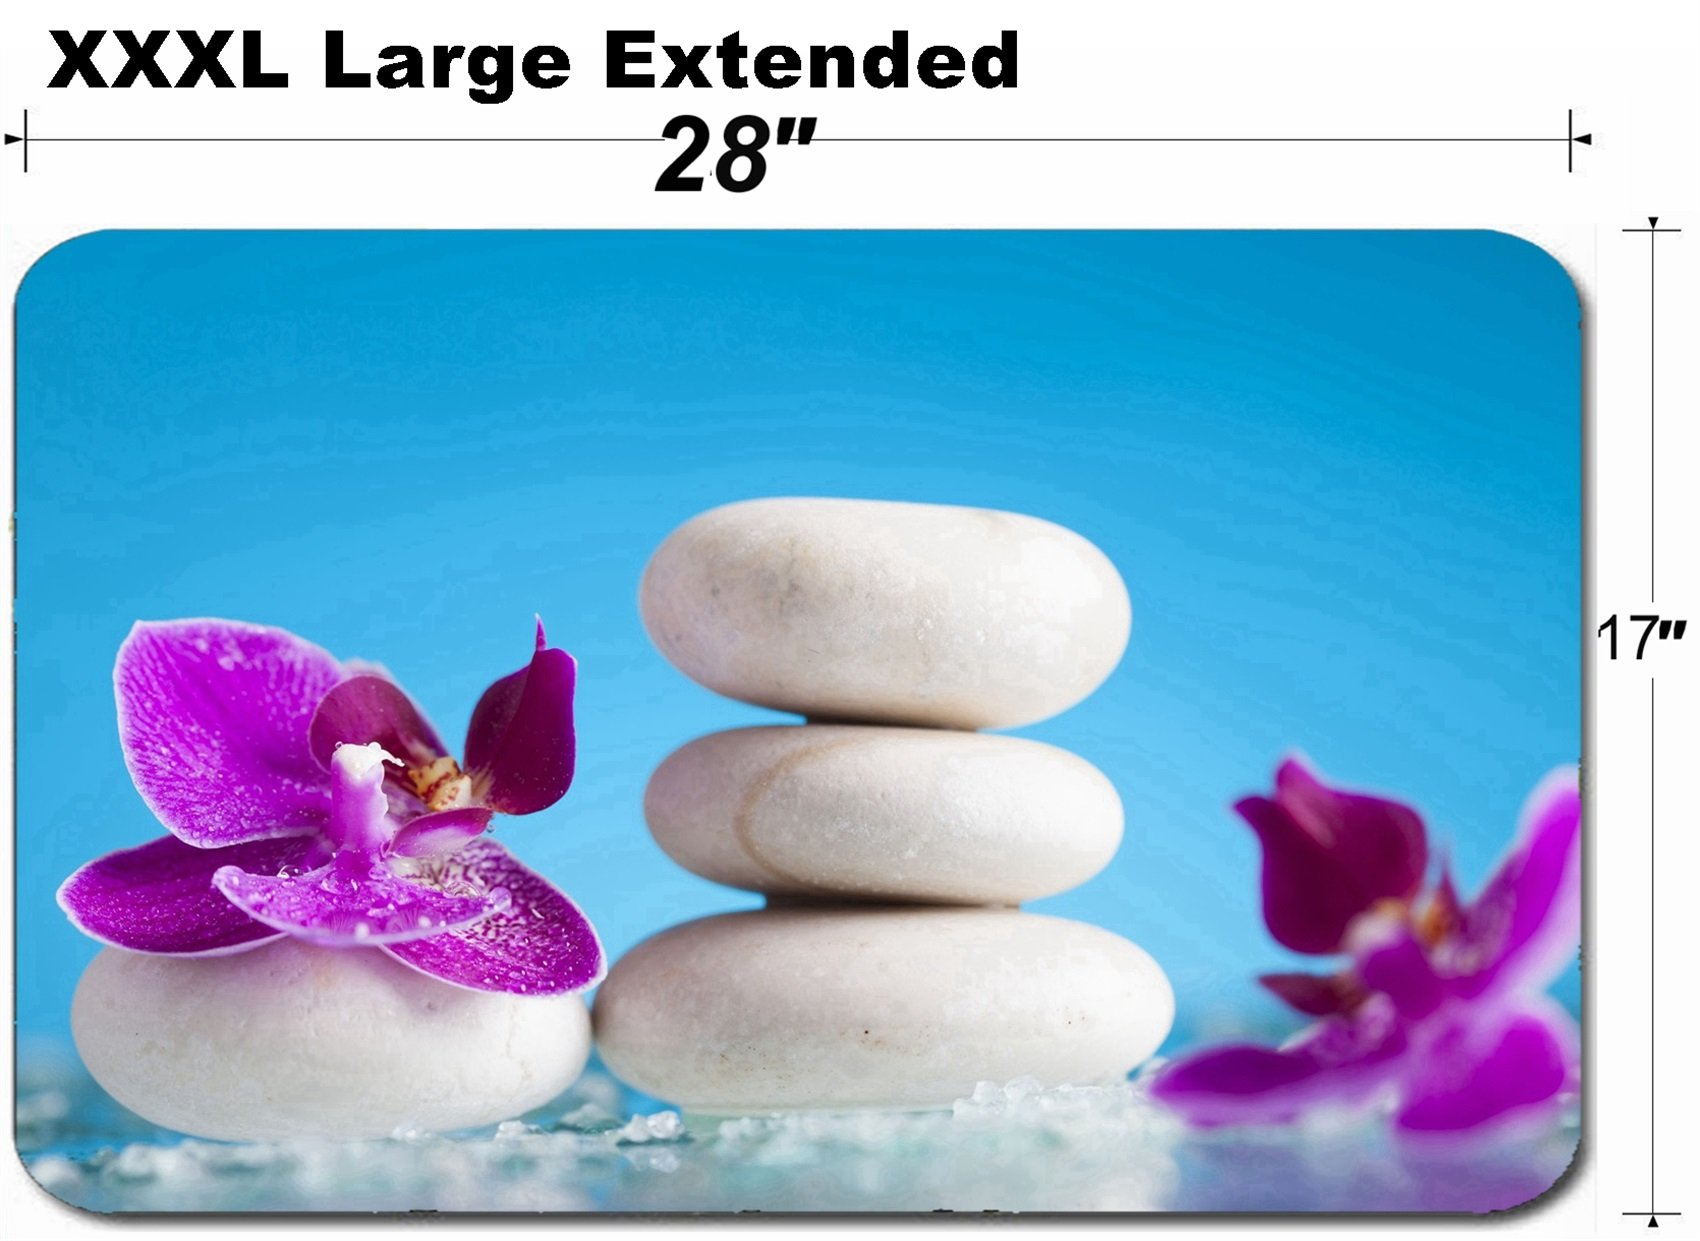 MSD Large Table Mat Non-Slip Natural Rubber Desk Pads Image ID 35620197 Spa Still Life with Pink Orchid and White Zen Stone in a Serenity Poo by MSD (Image #1)